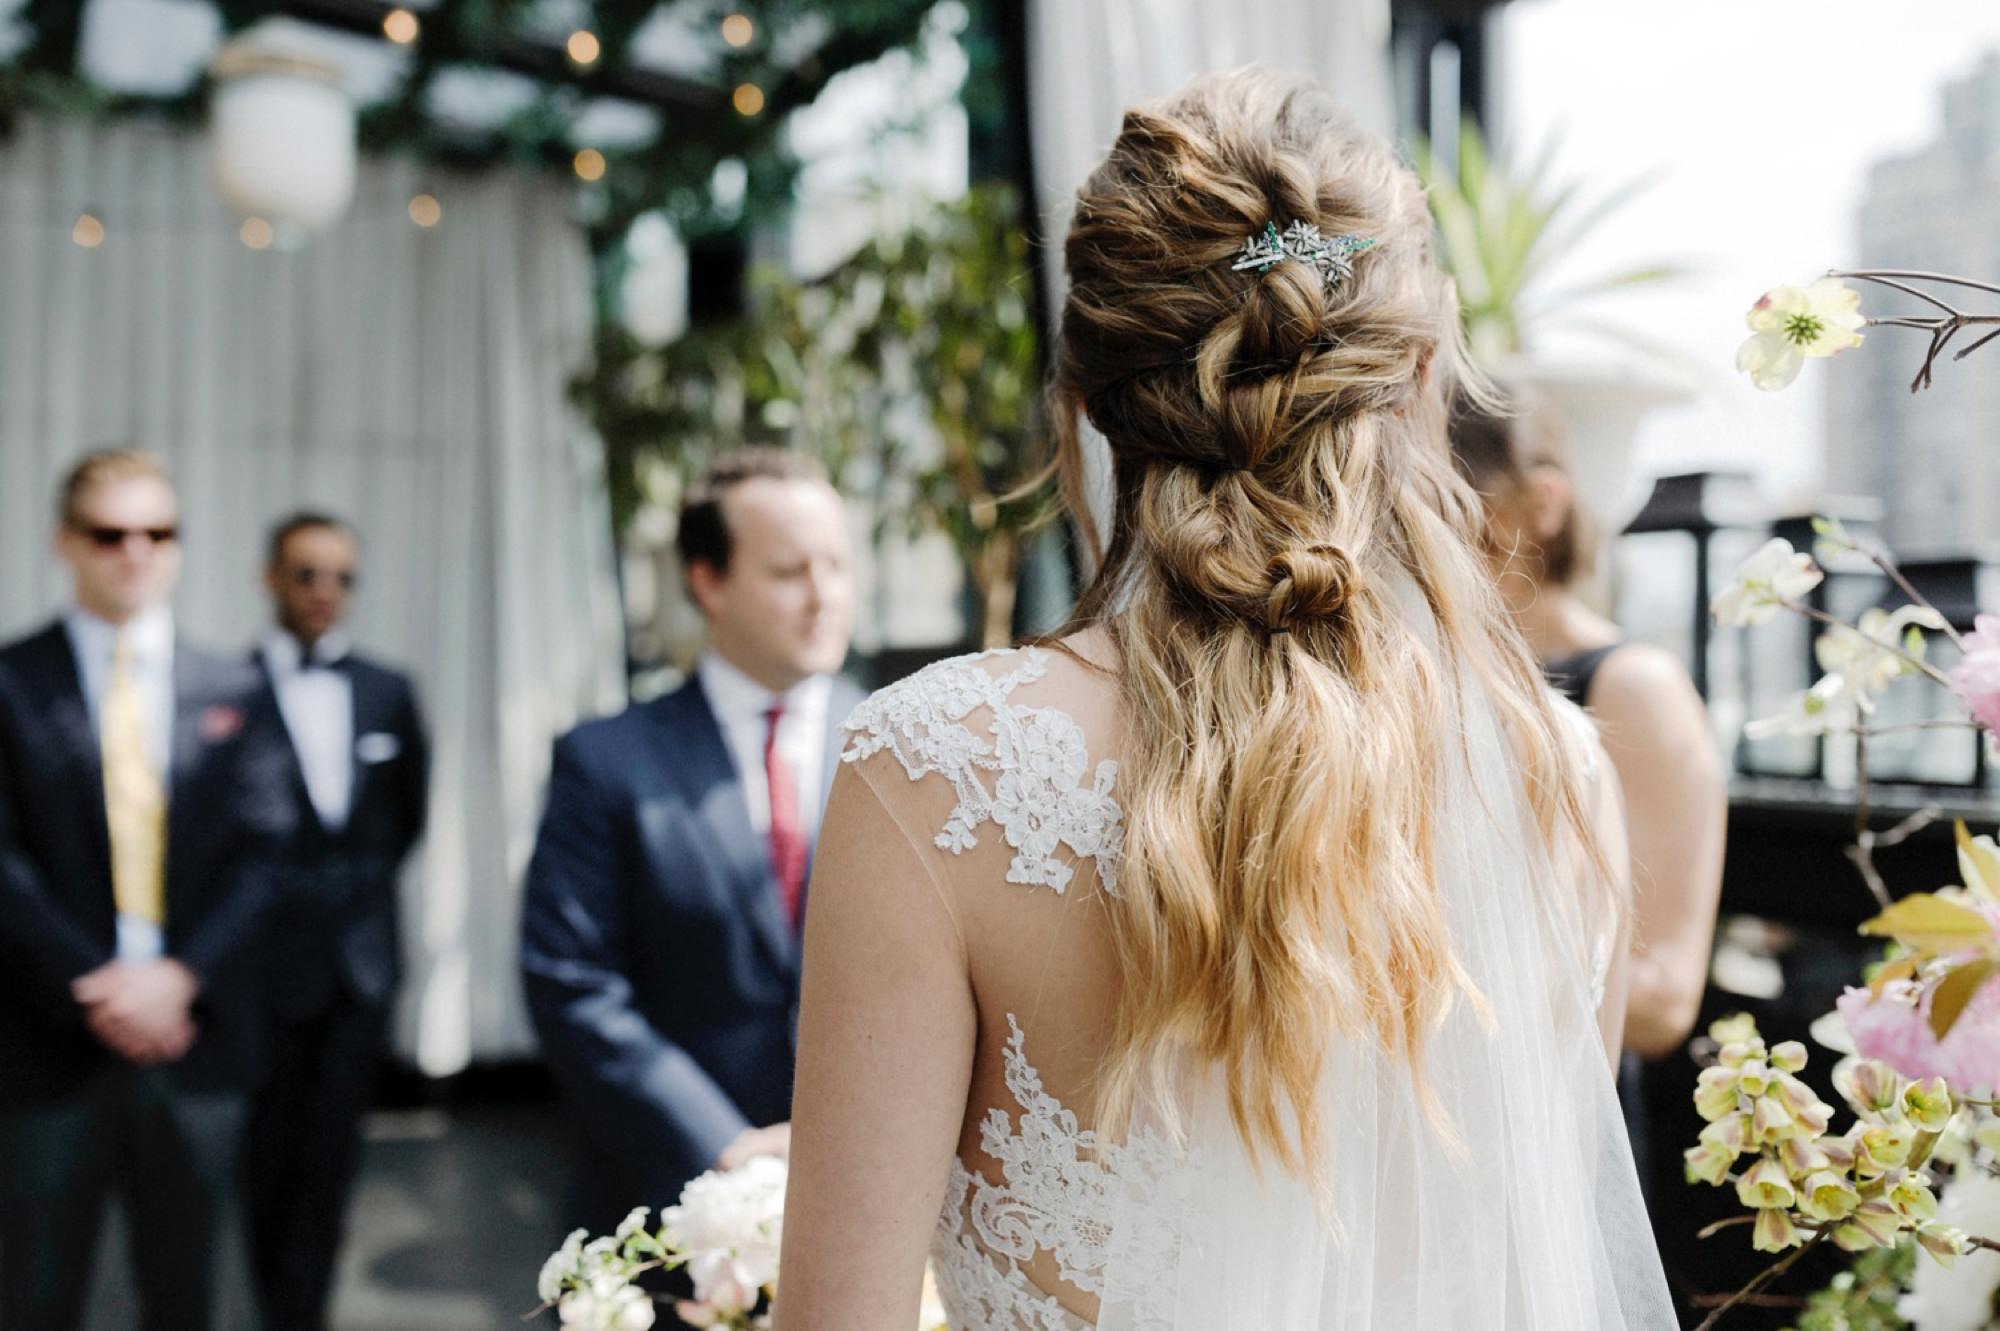 Brides hair during wedding ceremony at ceremony at Gramercy terrace rooftop at ceremony at Gramercy Park Hotel